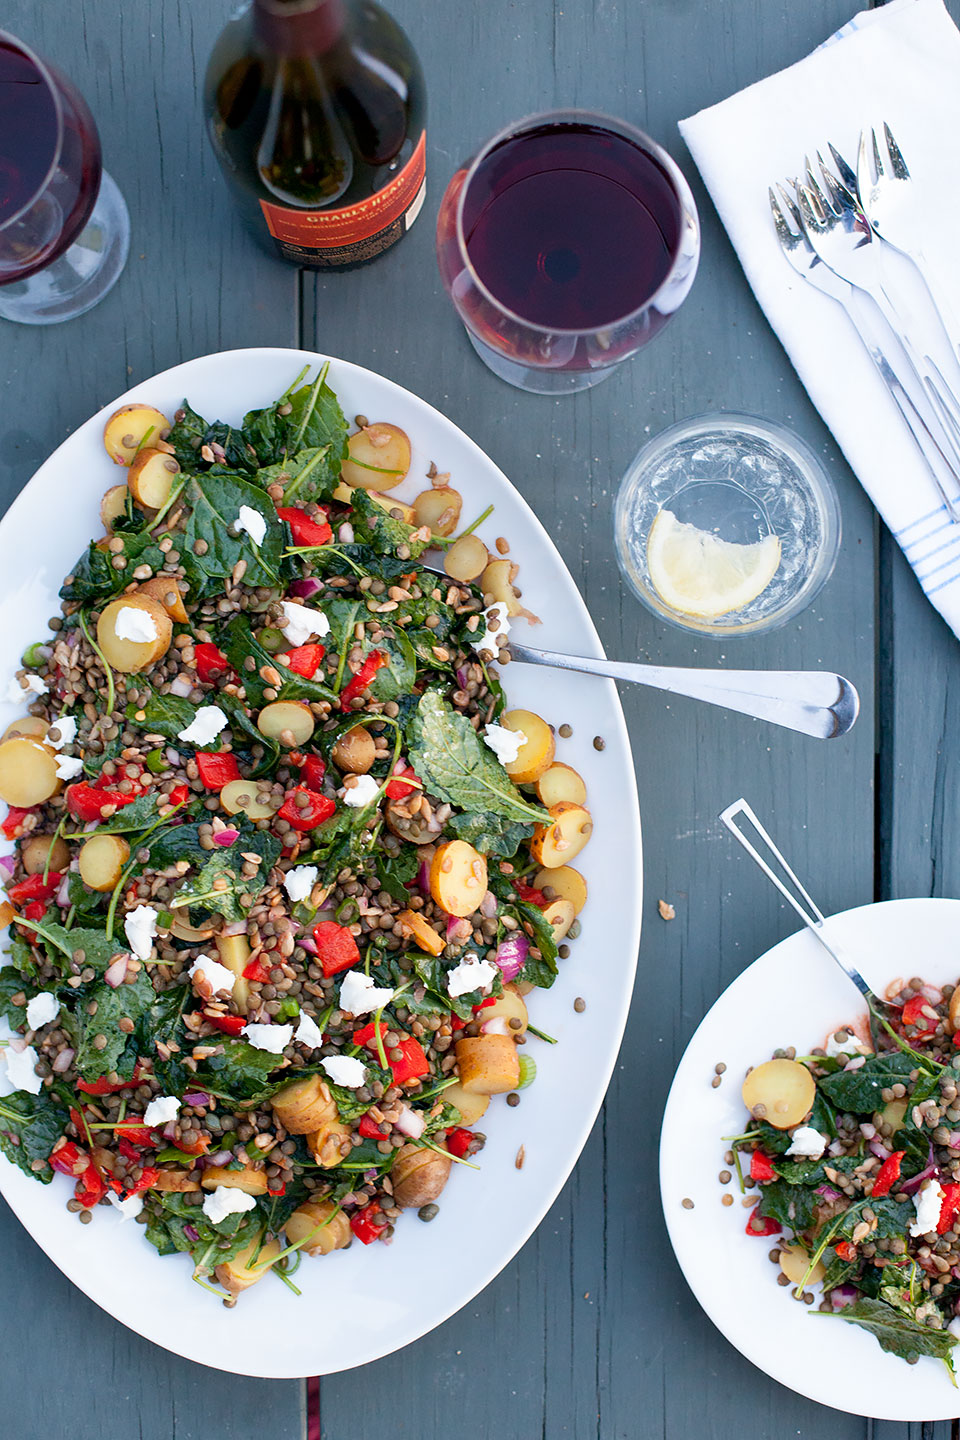 Lentil Potato Salad with Red Peppers and Smoky Paprika Dressing   Gluten-free with a vegan option.  Loveleaf Co.